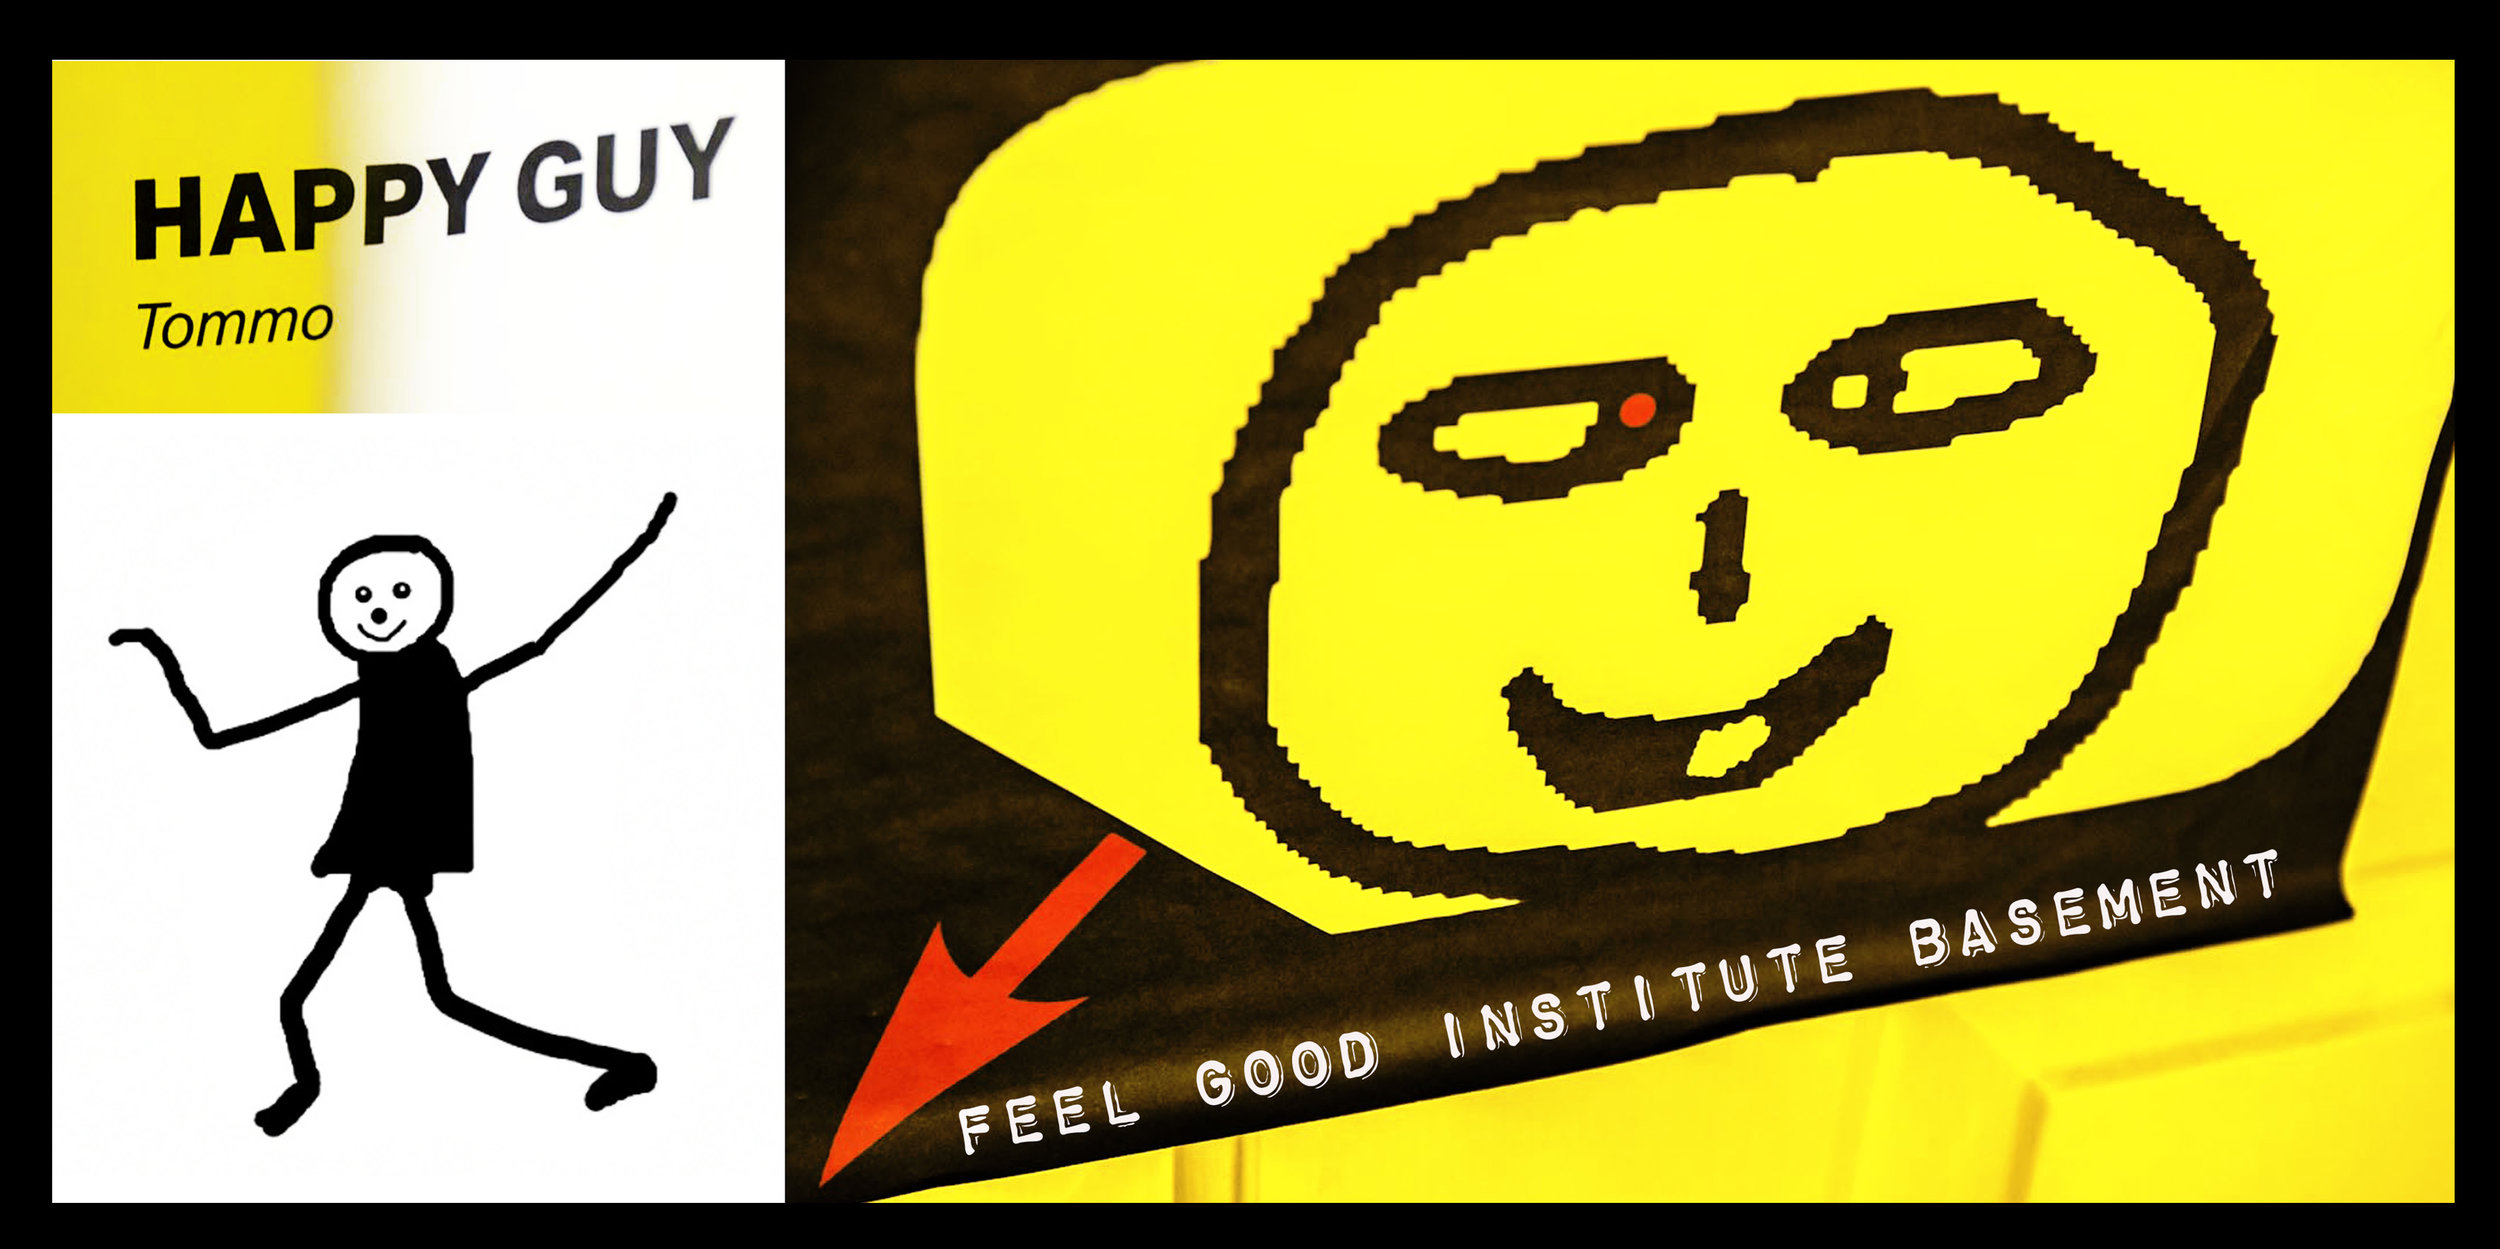 Happy Guy Ad.jpg